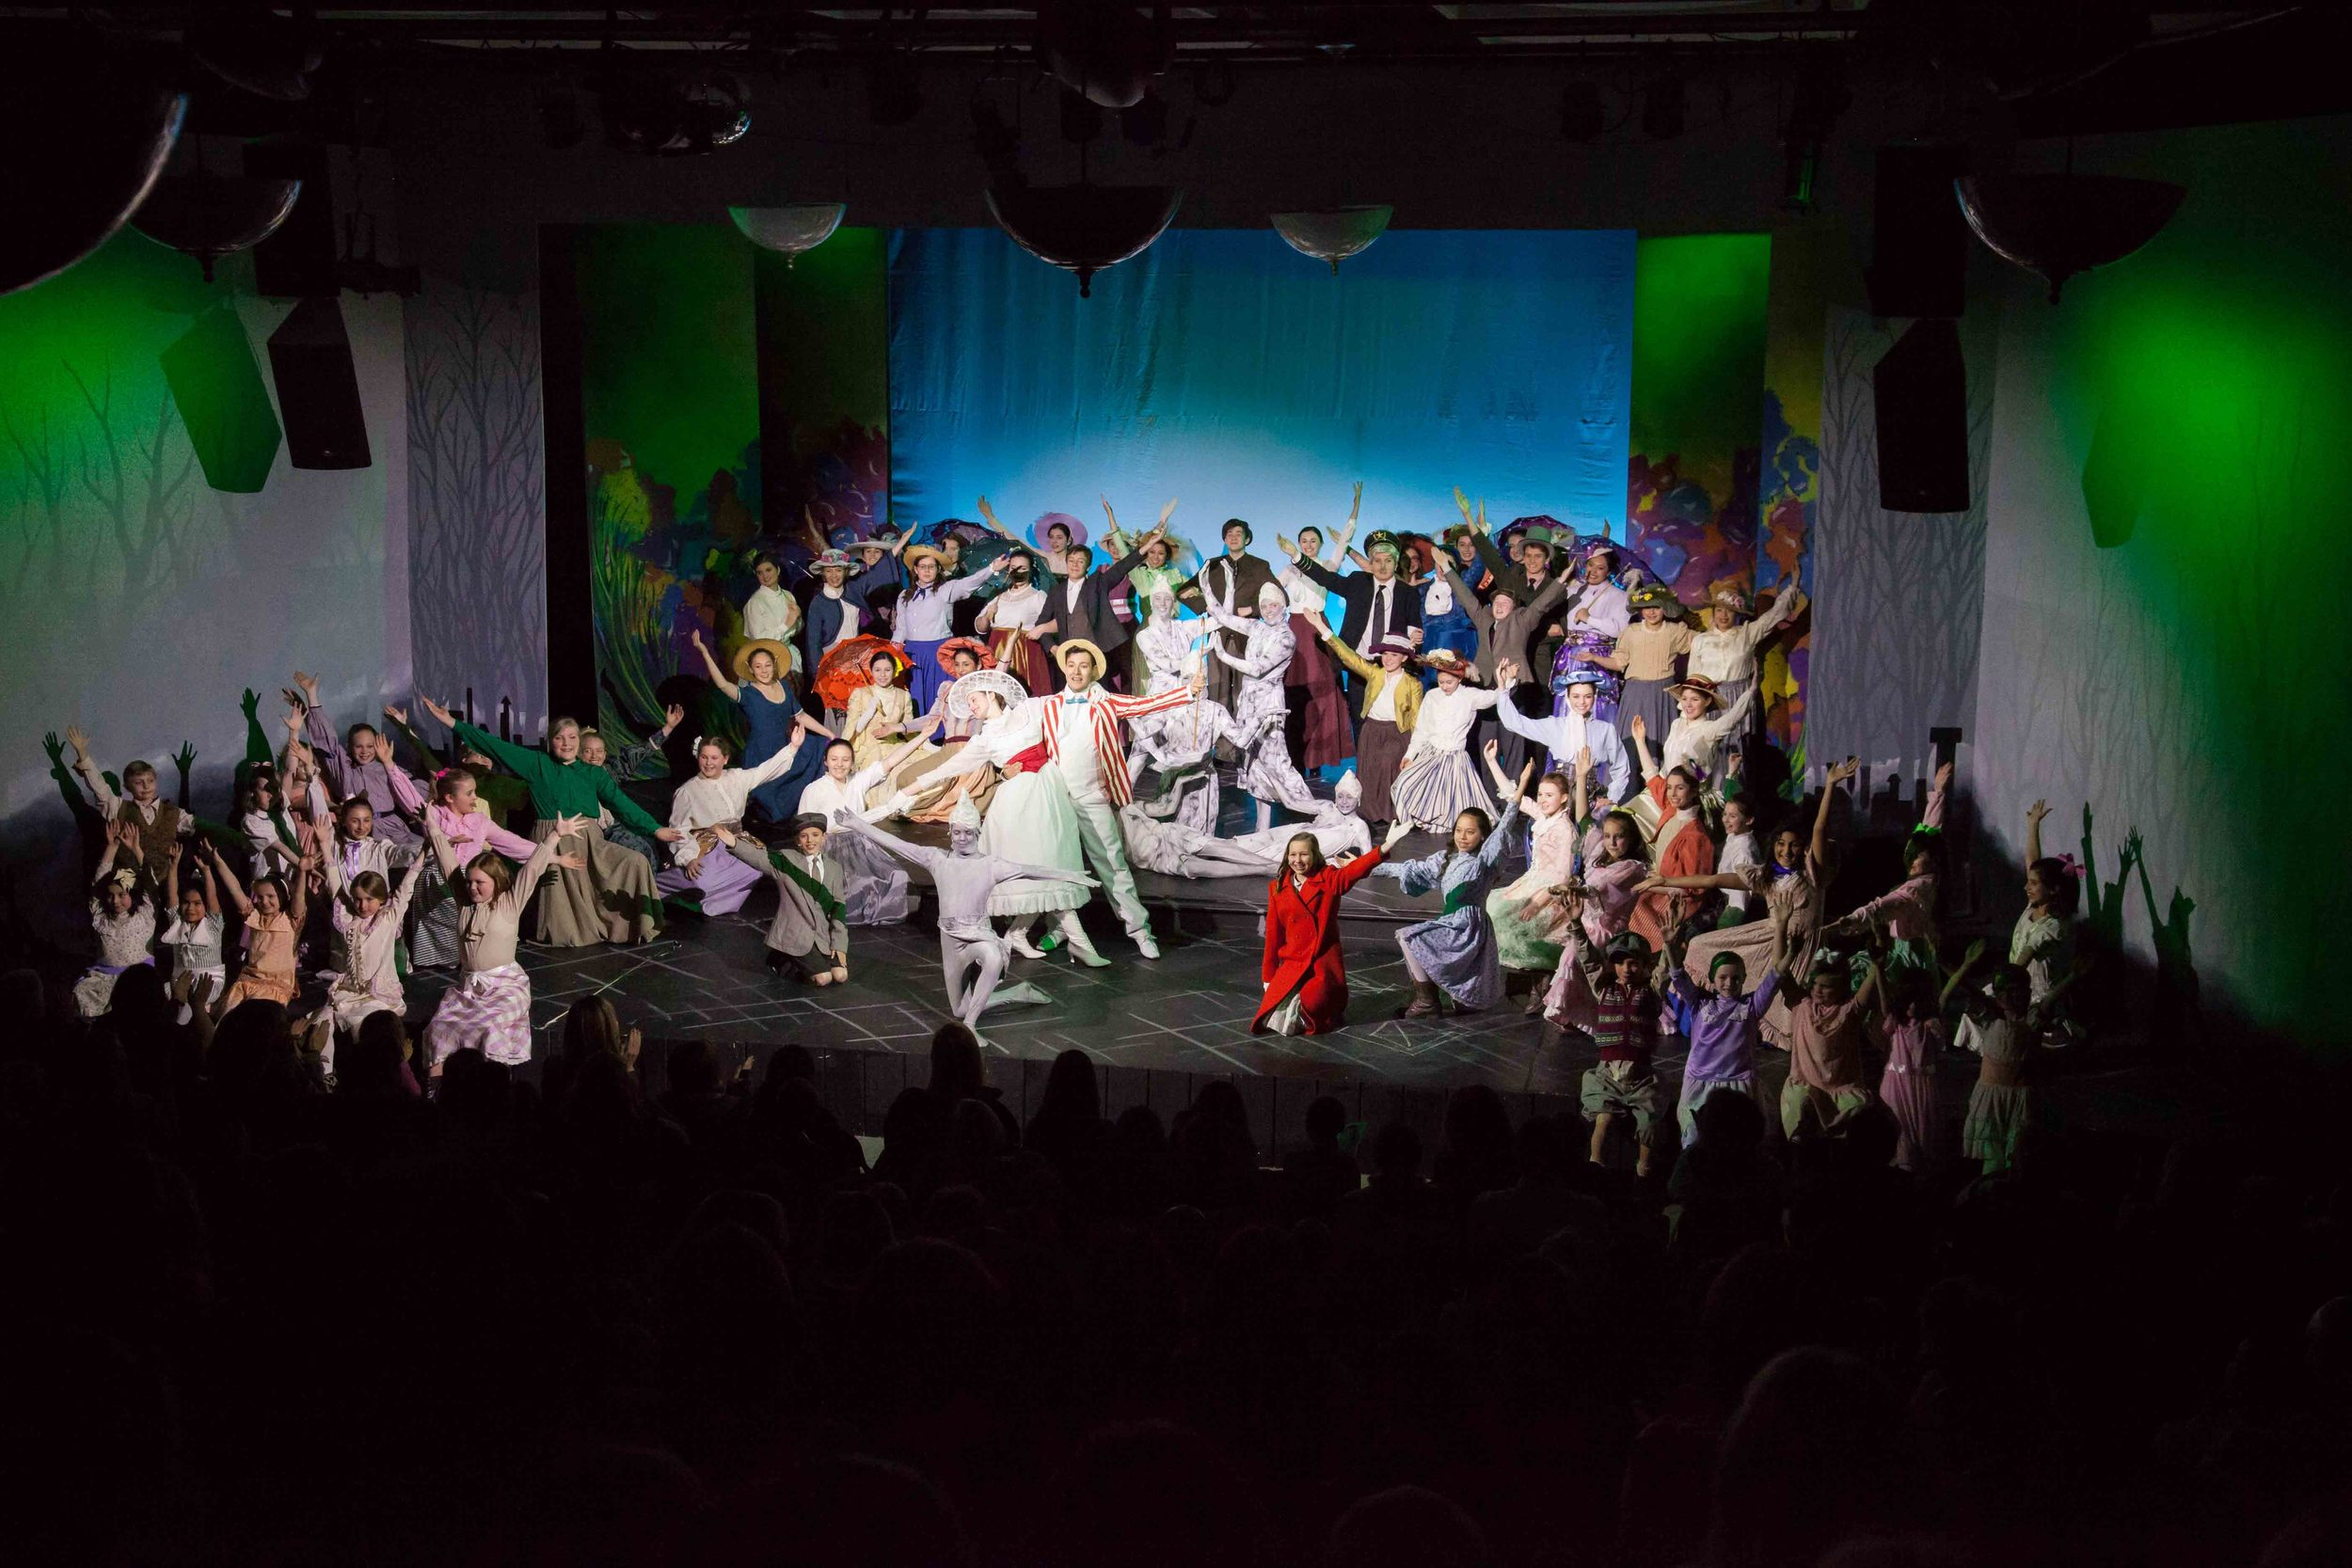 2-4-16 Mary Poppins Proper Cast 0148.jpg